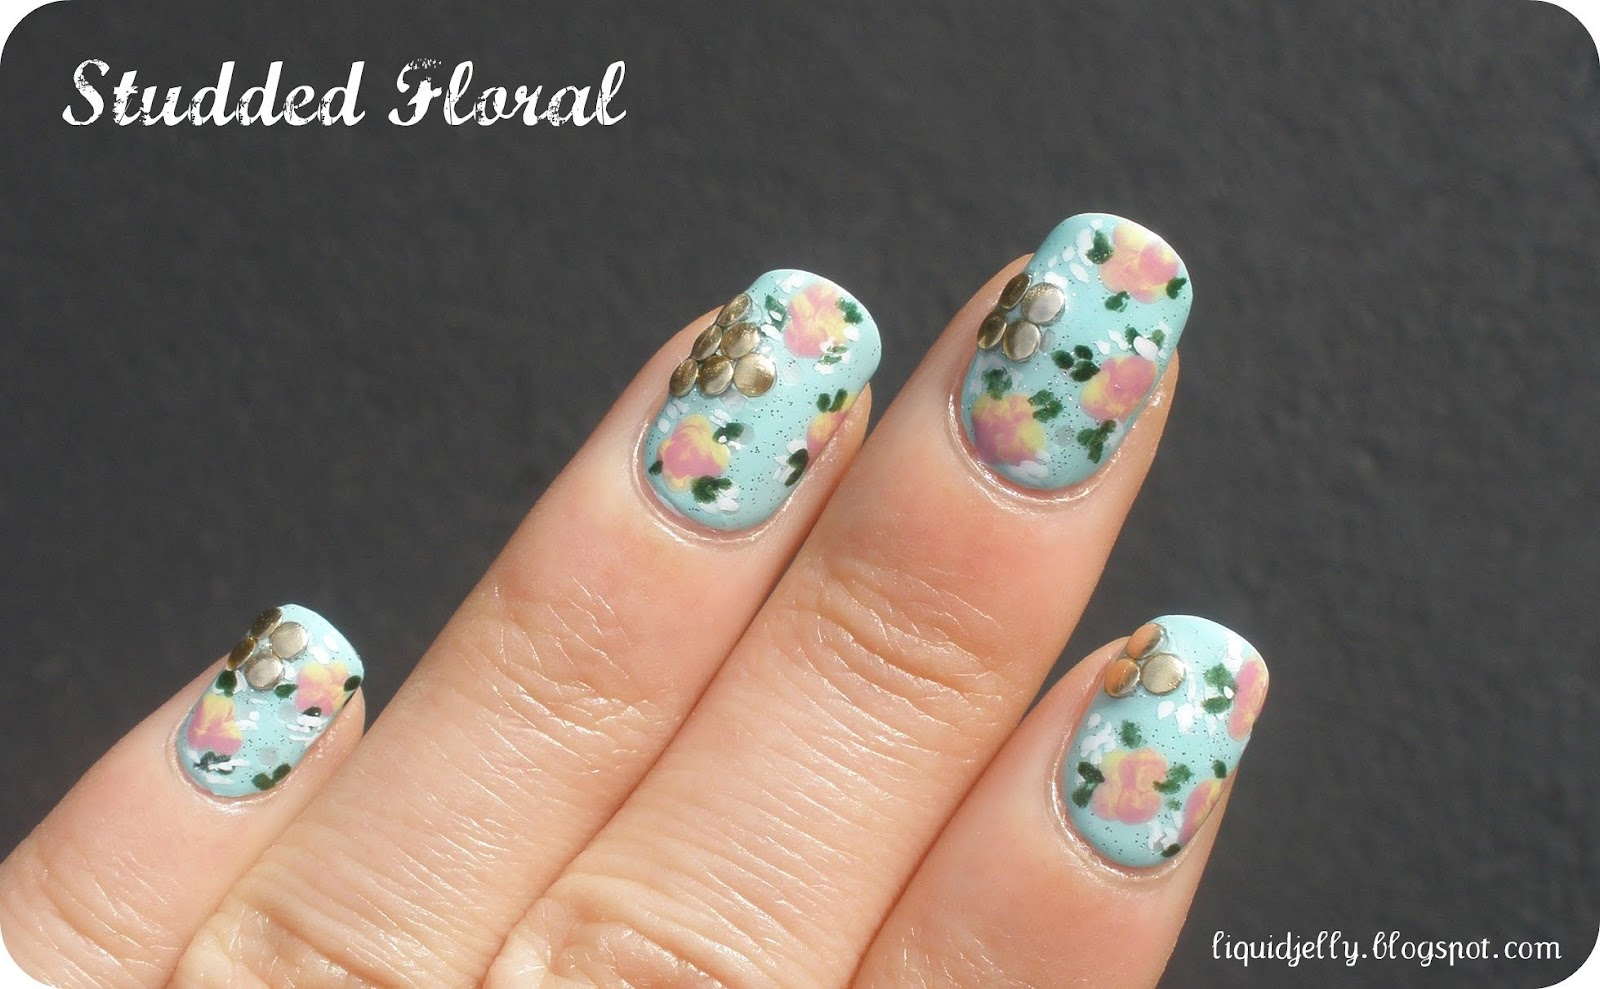 Liquid Jelly: Floral Nail Art with BPS Studs